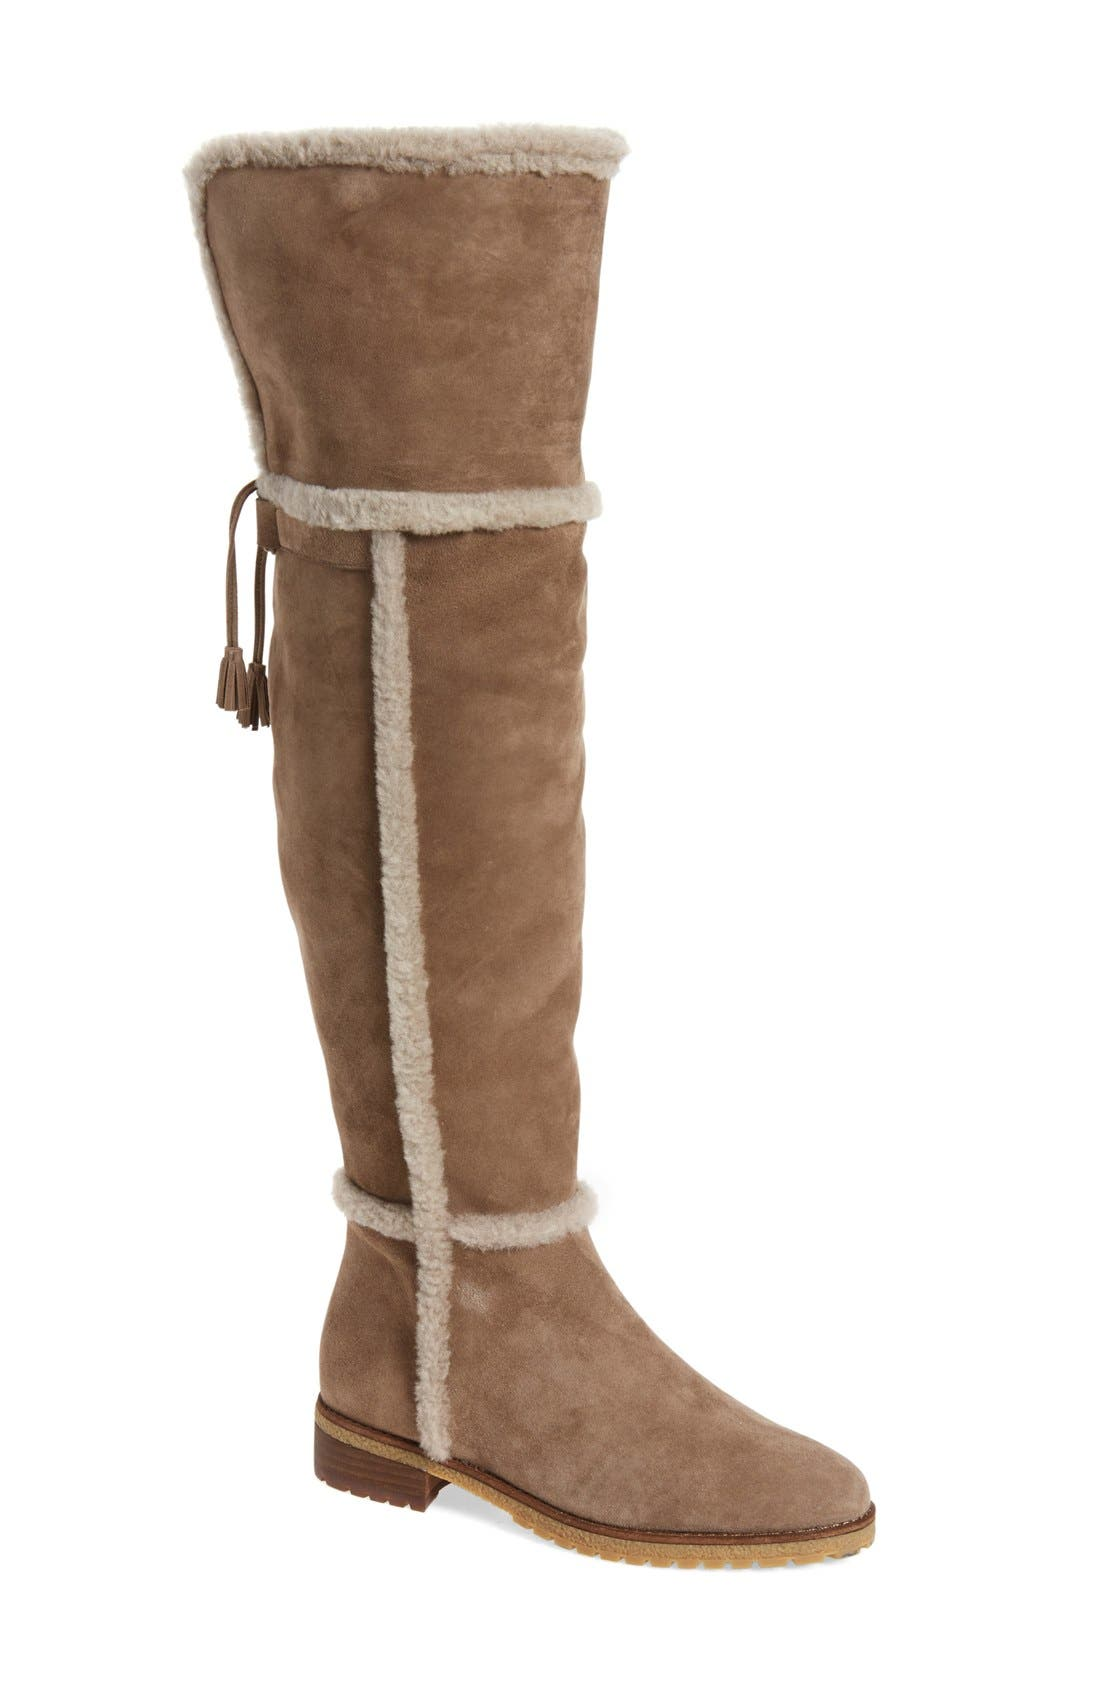 'Tamara' Genuine Shearling Over the Knee Boot,                             Main thumbnail 1, color,                             Taupe Suede